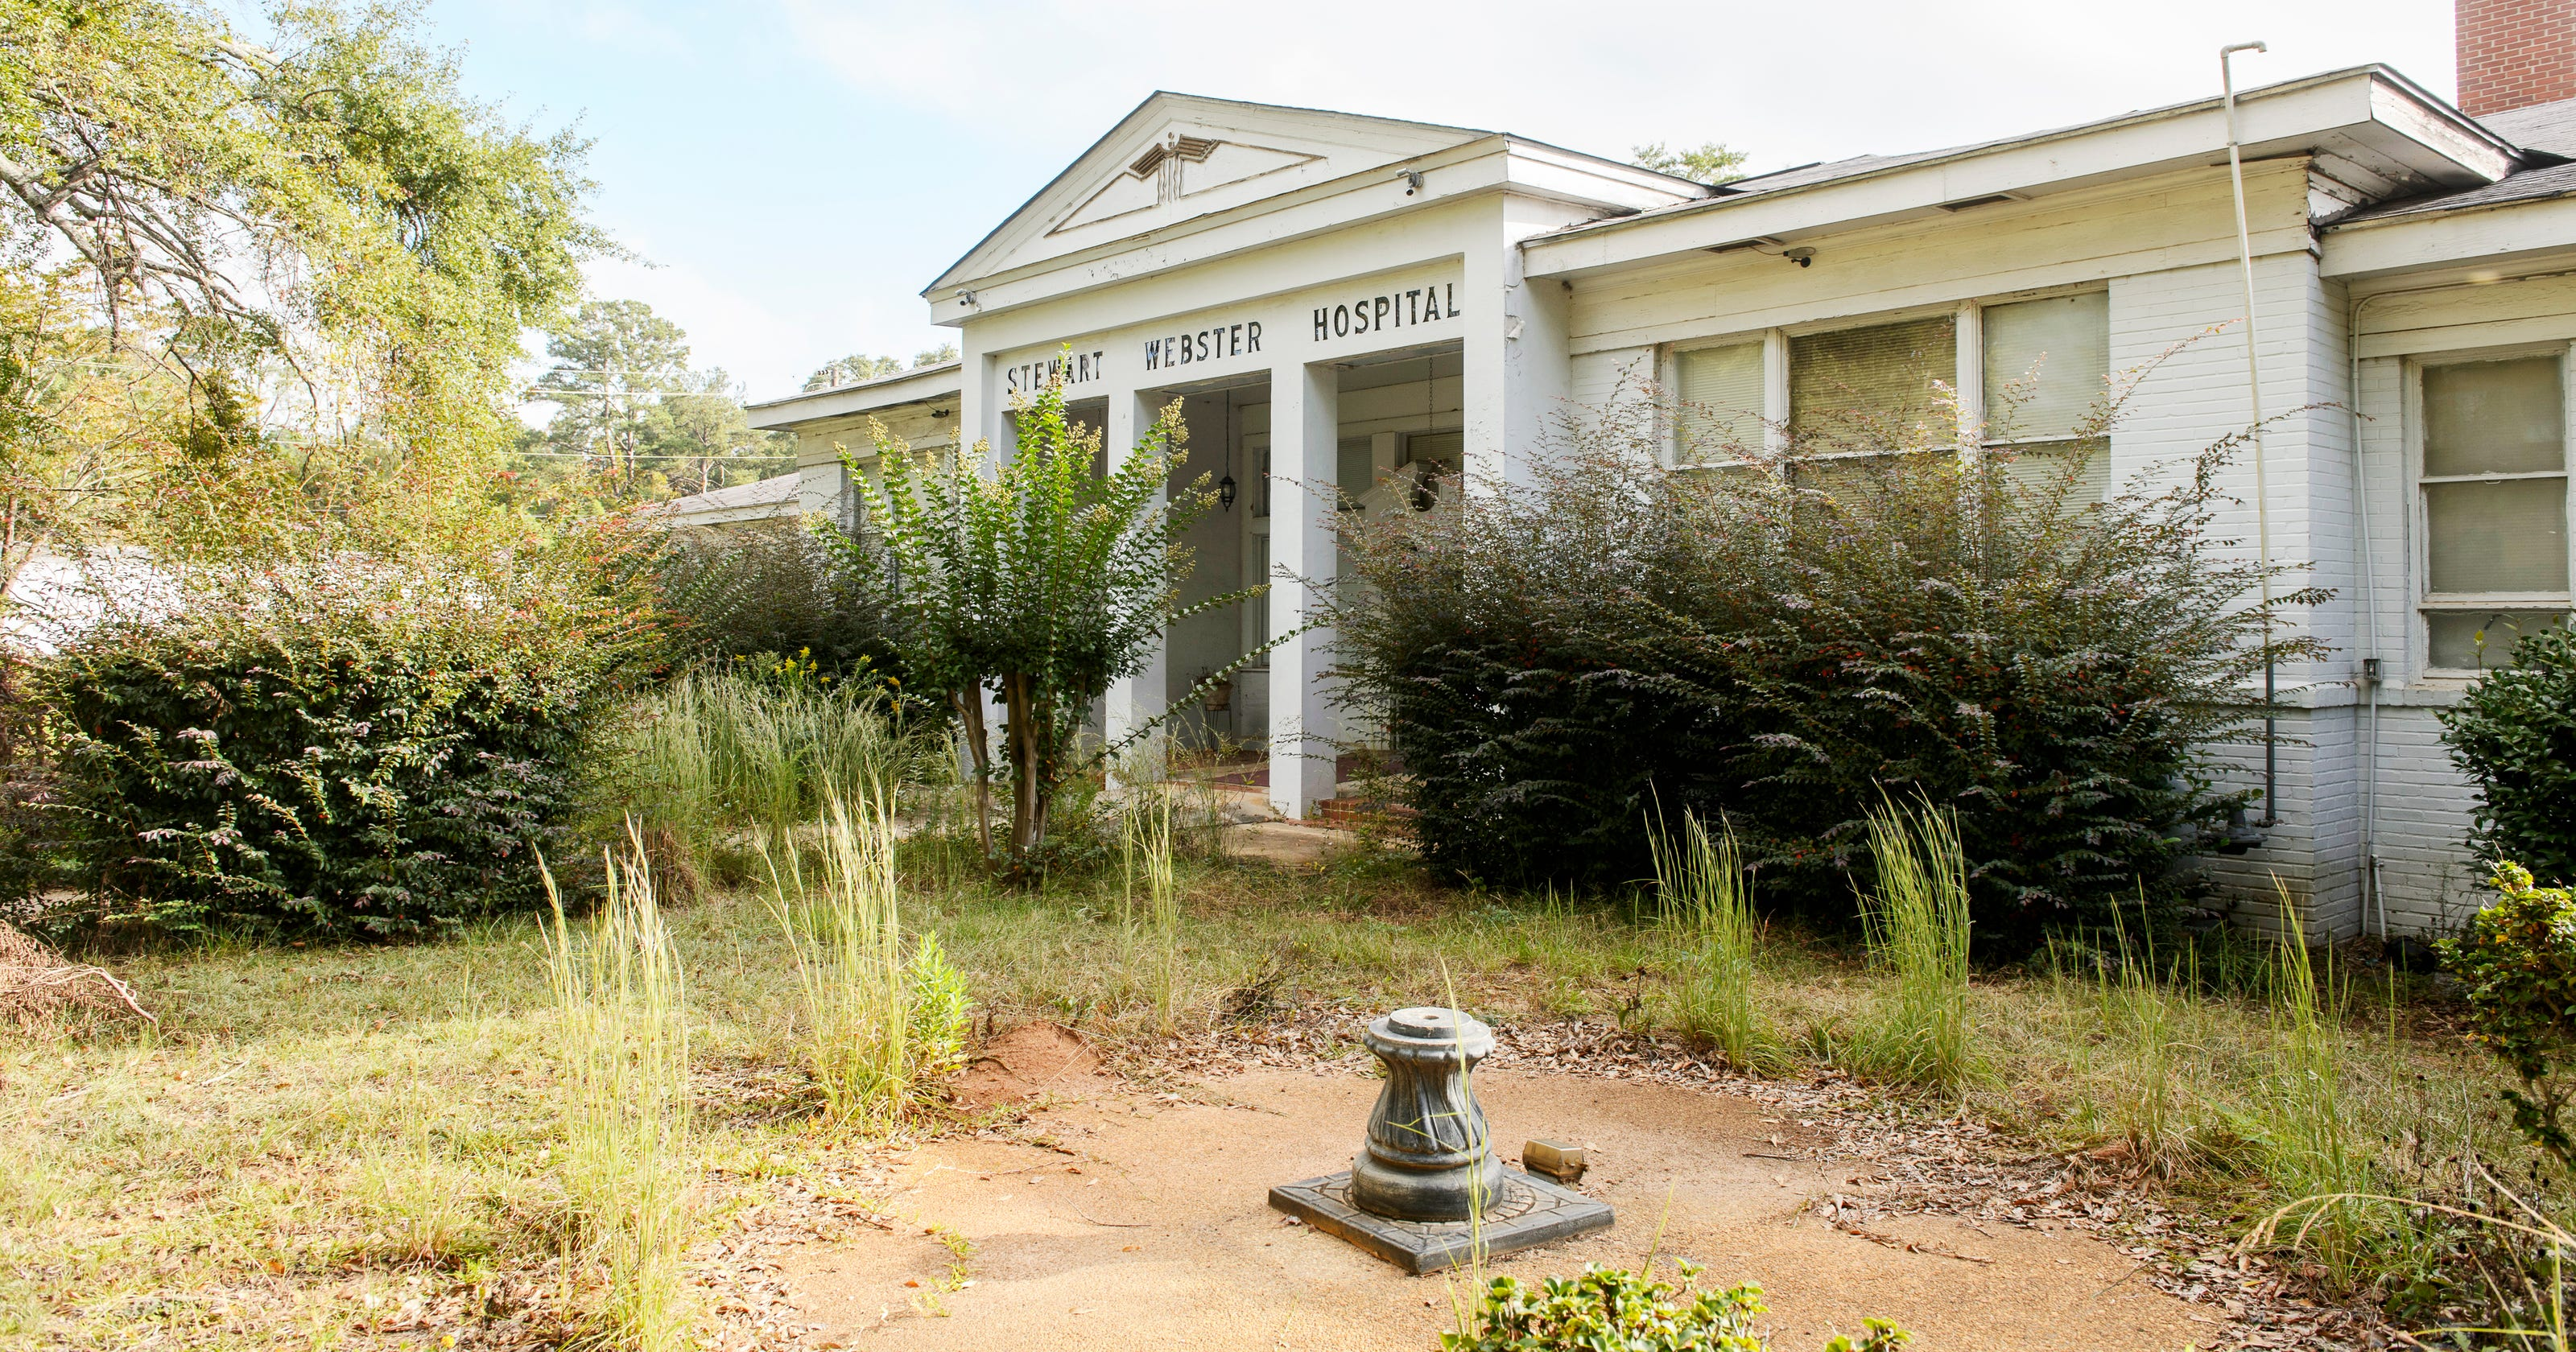 Rural hospitals in critical condition